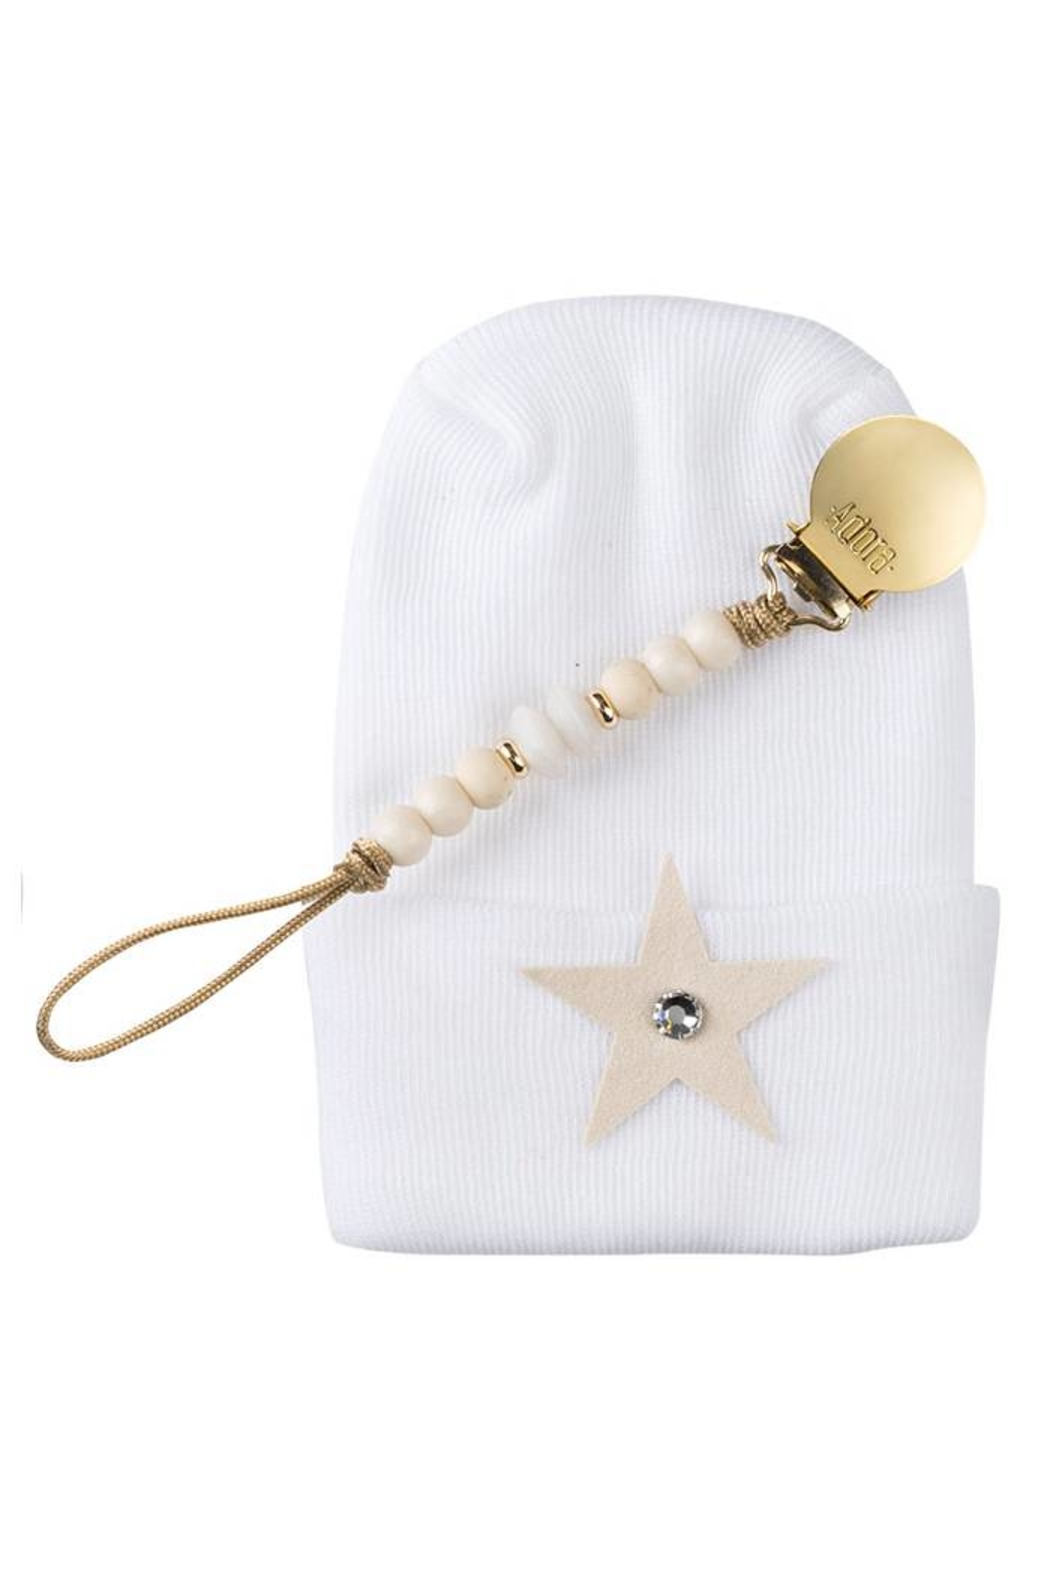 Adora Baby Ivory Star Gift Set For Boys Newborn(Hat + Pacifier Clip) - Main Image